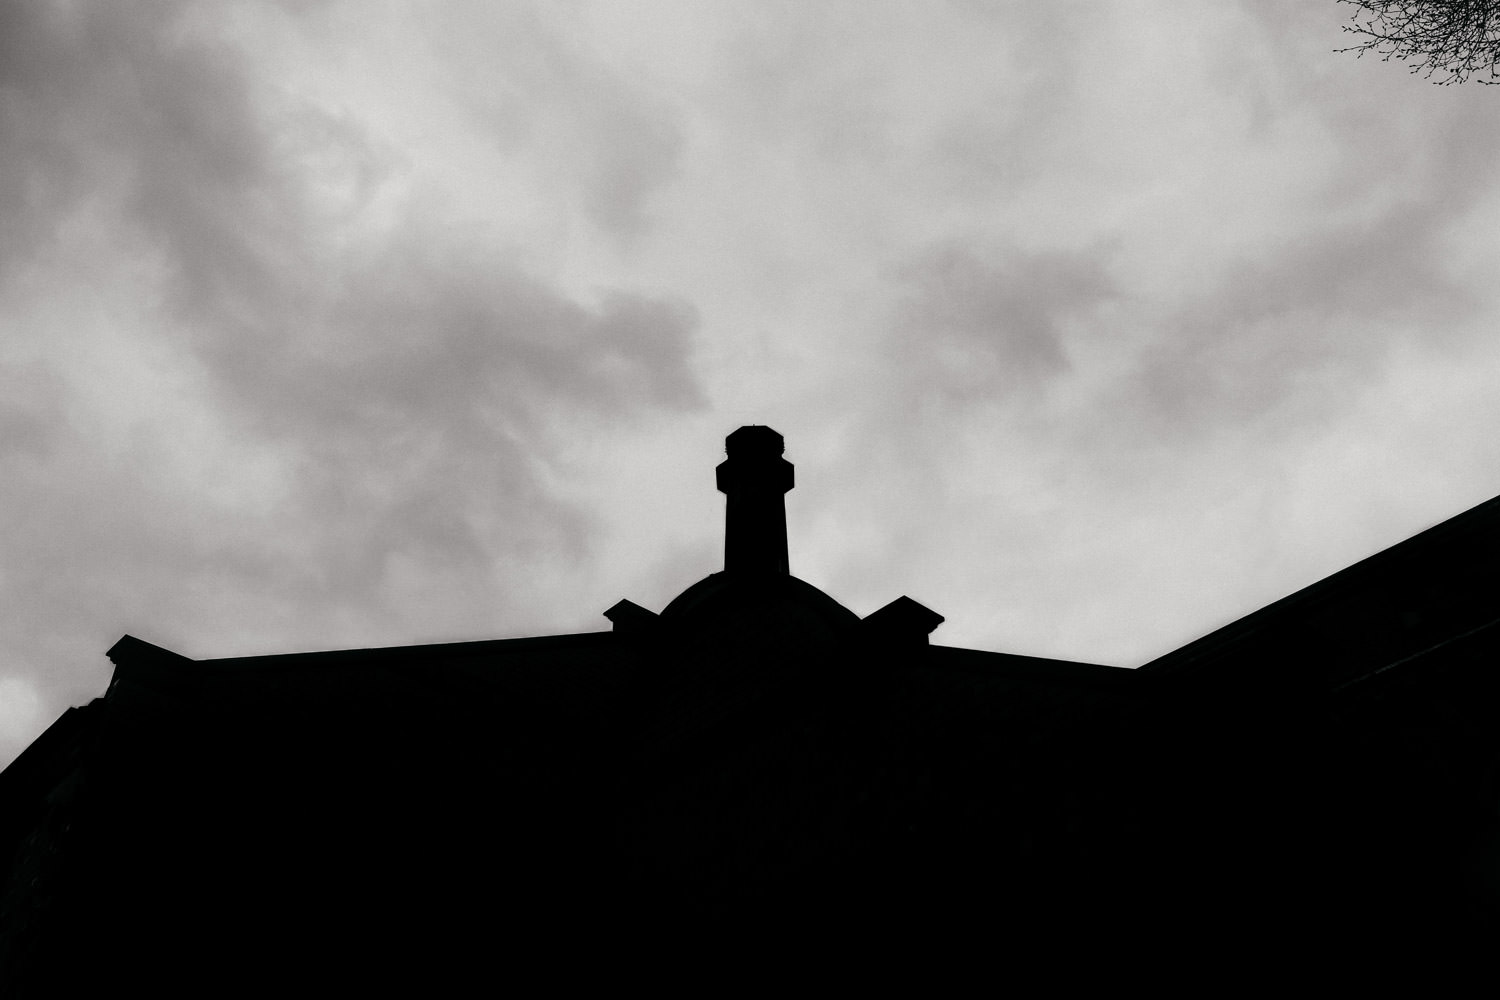 A silhouette of The Pumping House wedding venue